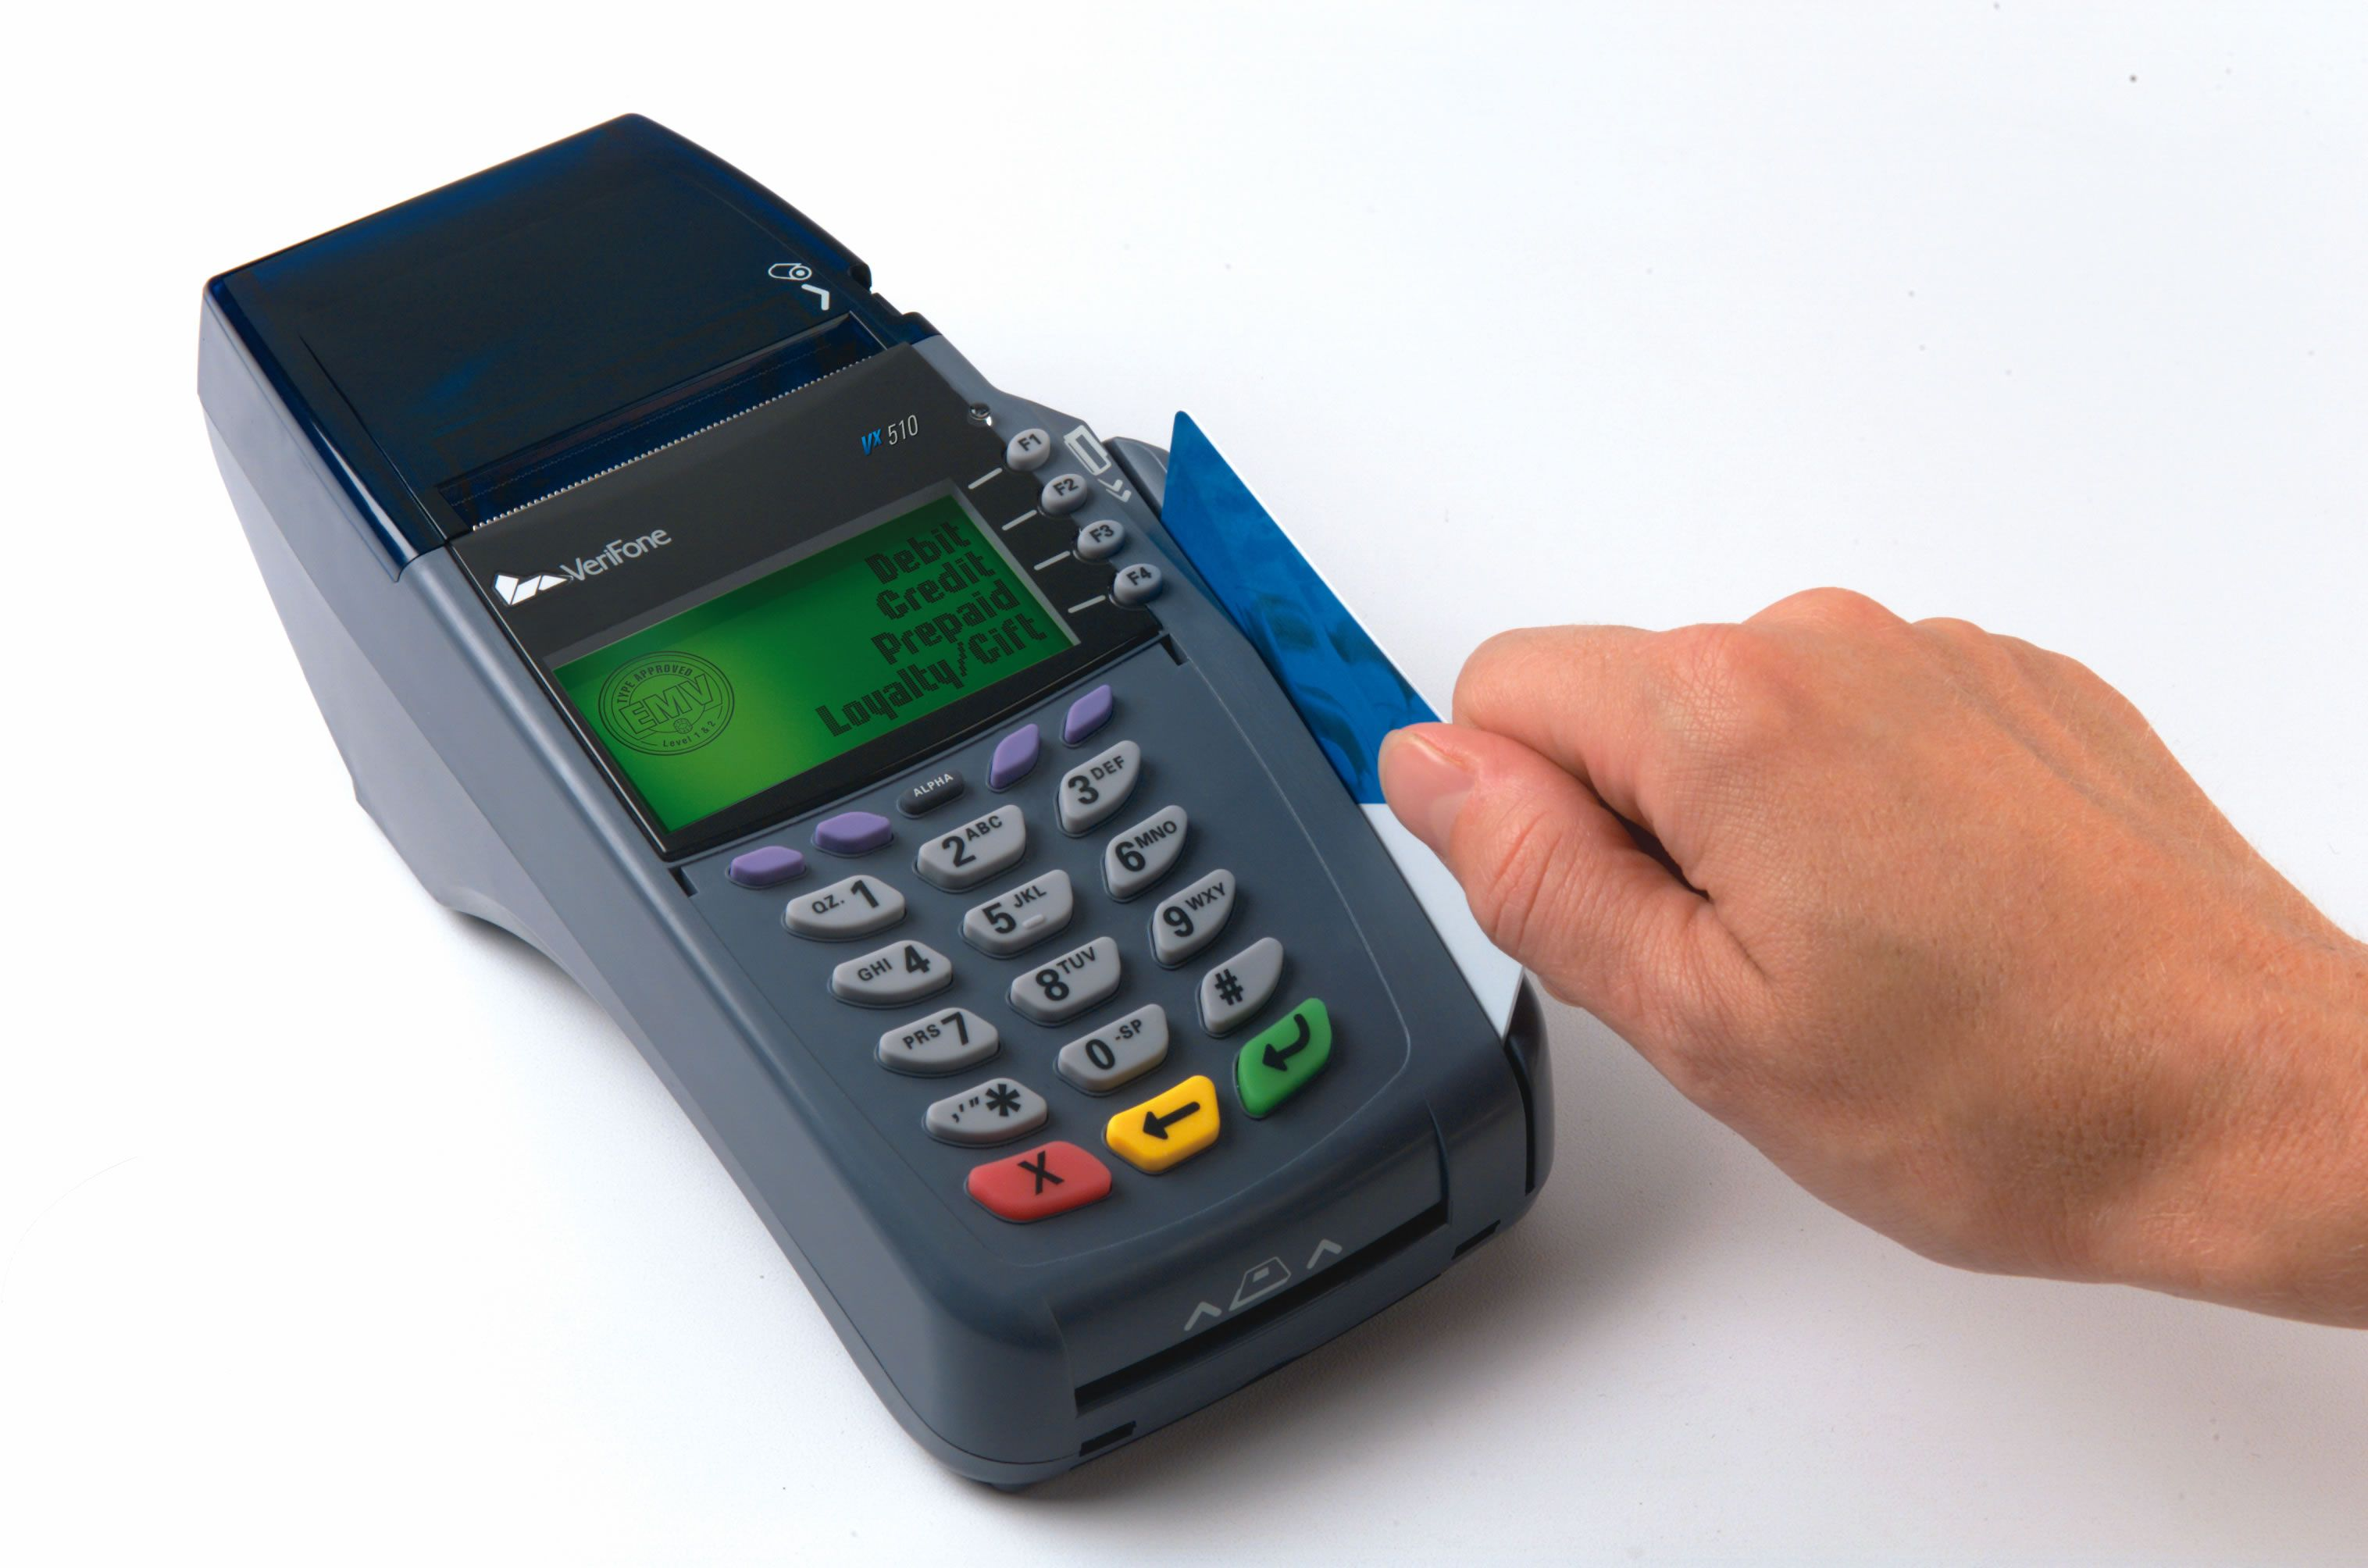 The credit card devices along with the software are provided for ...